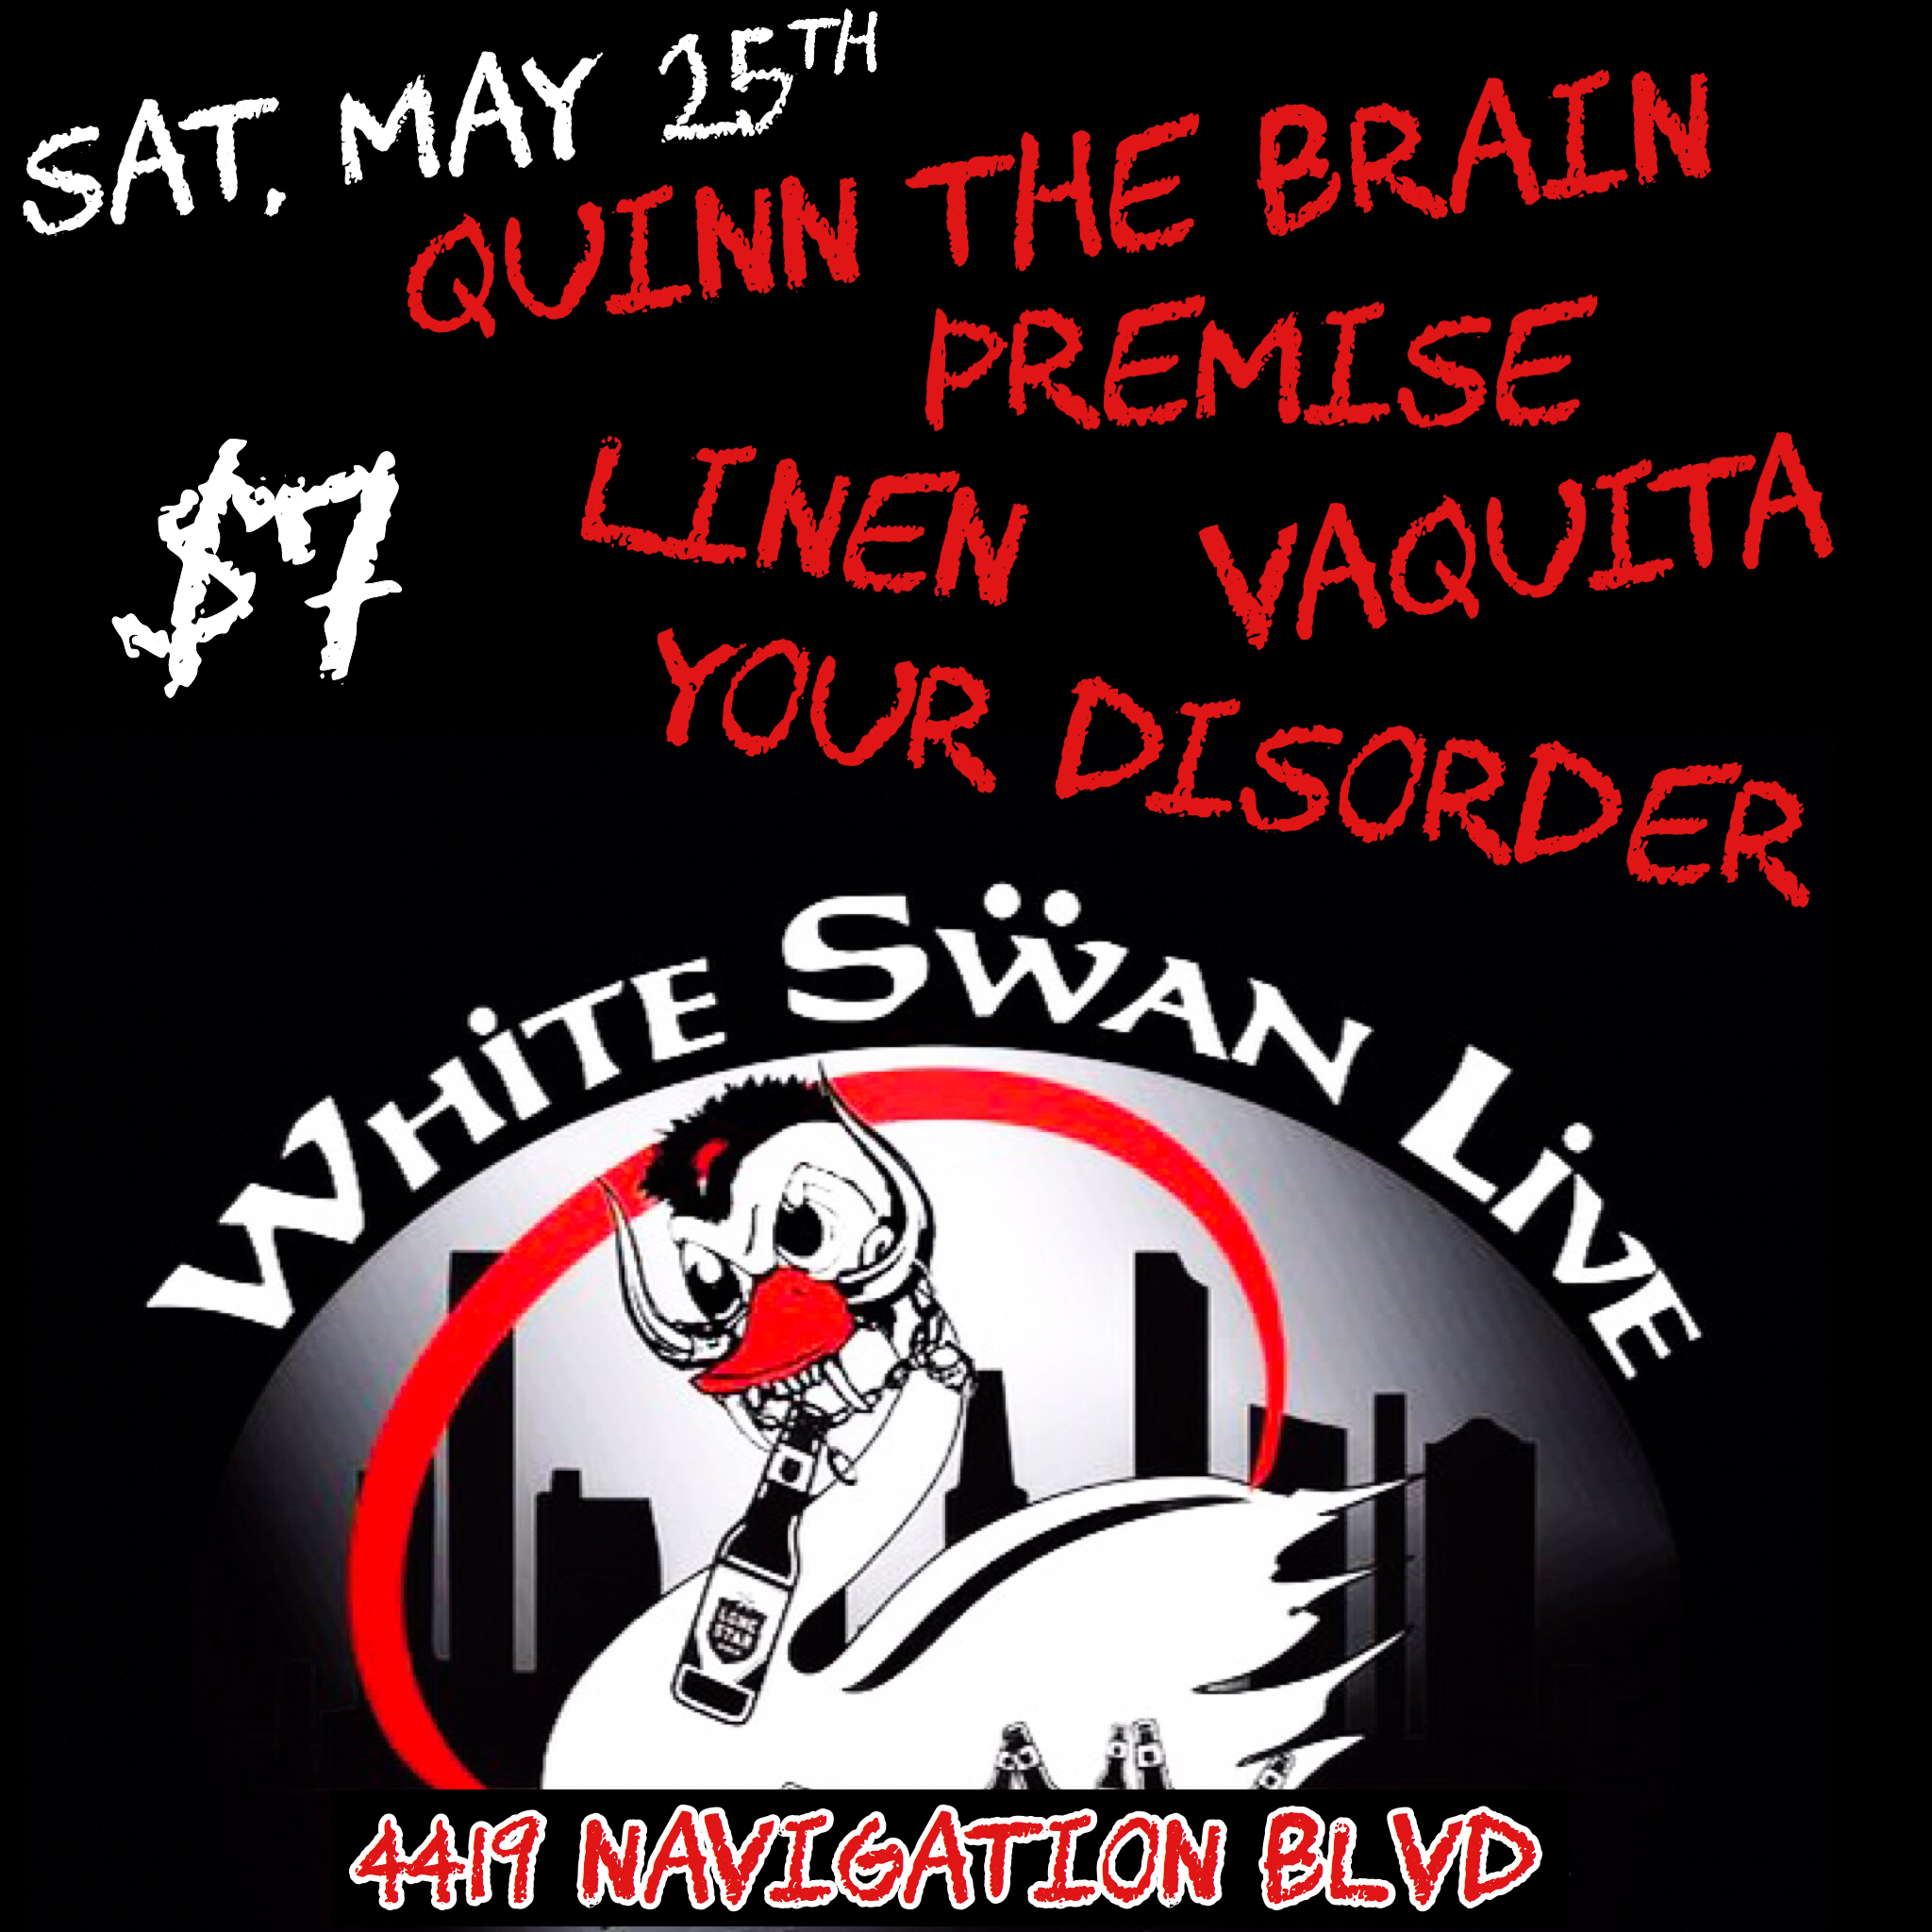 quinn the brain, white swan live